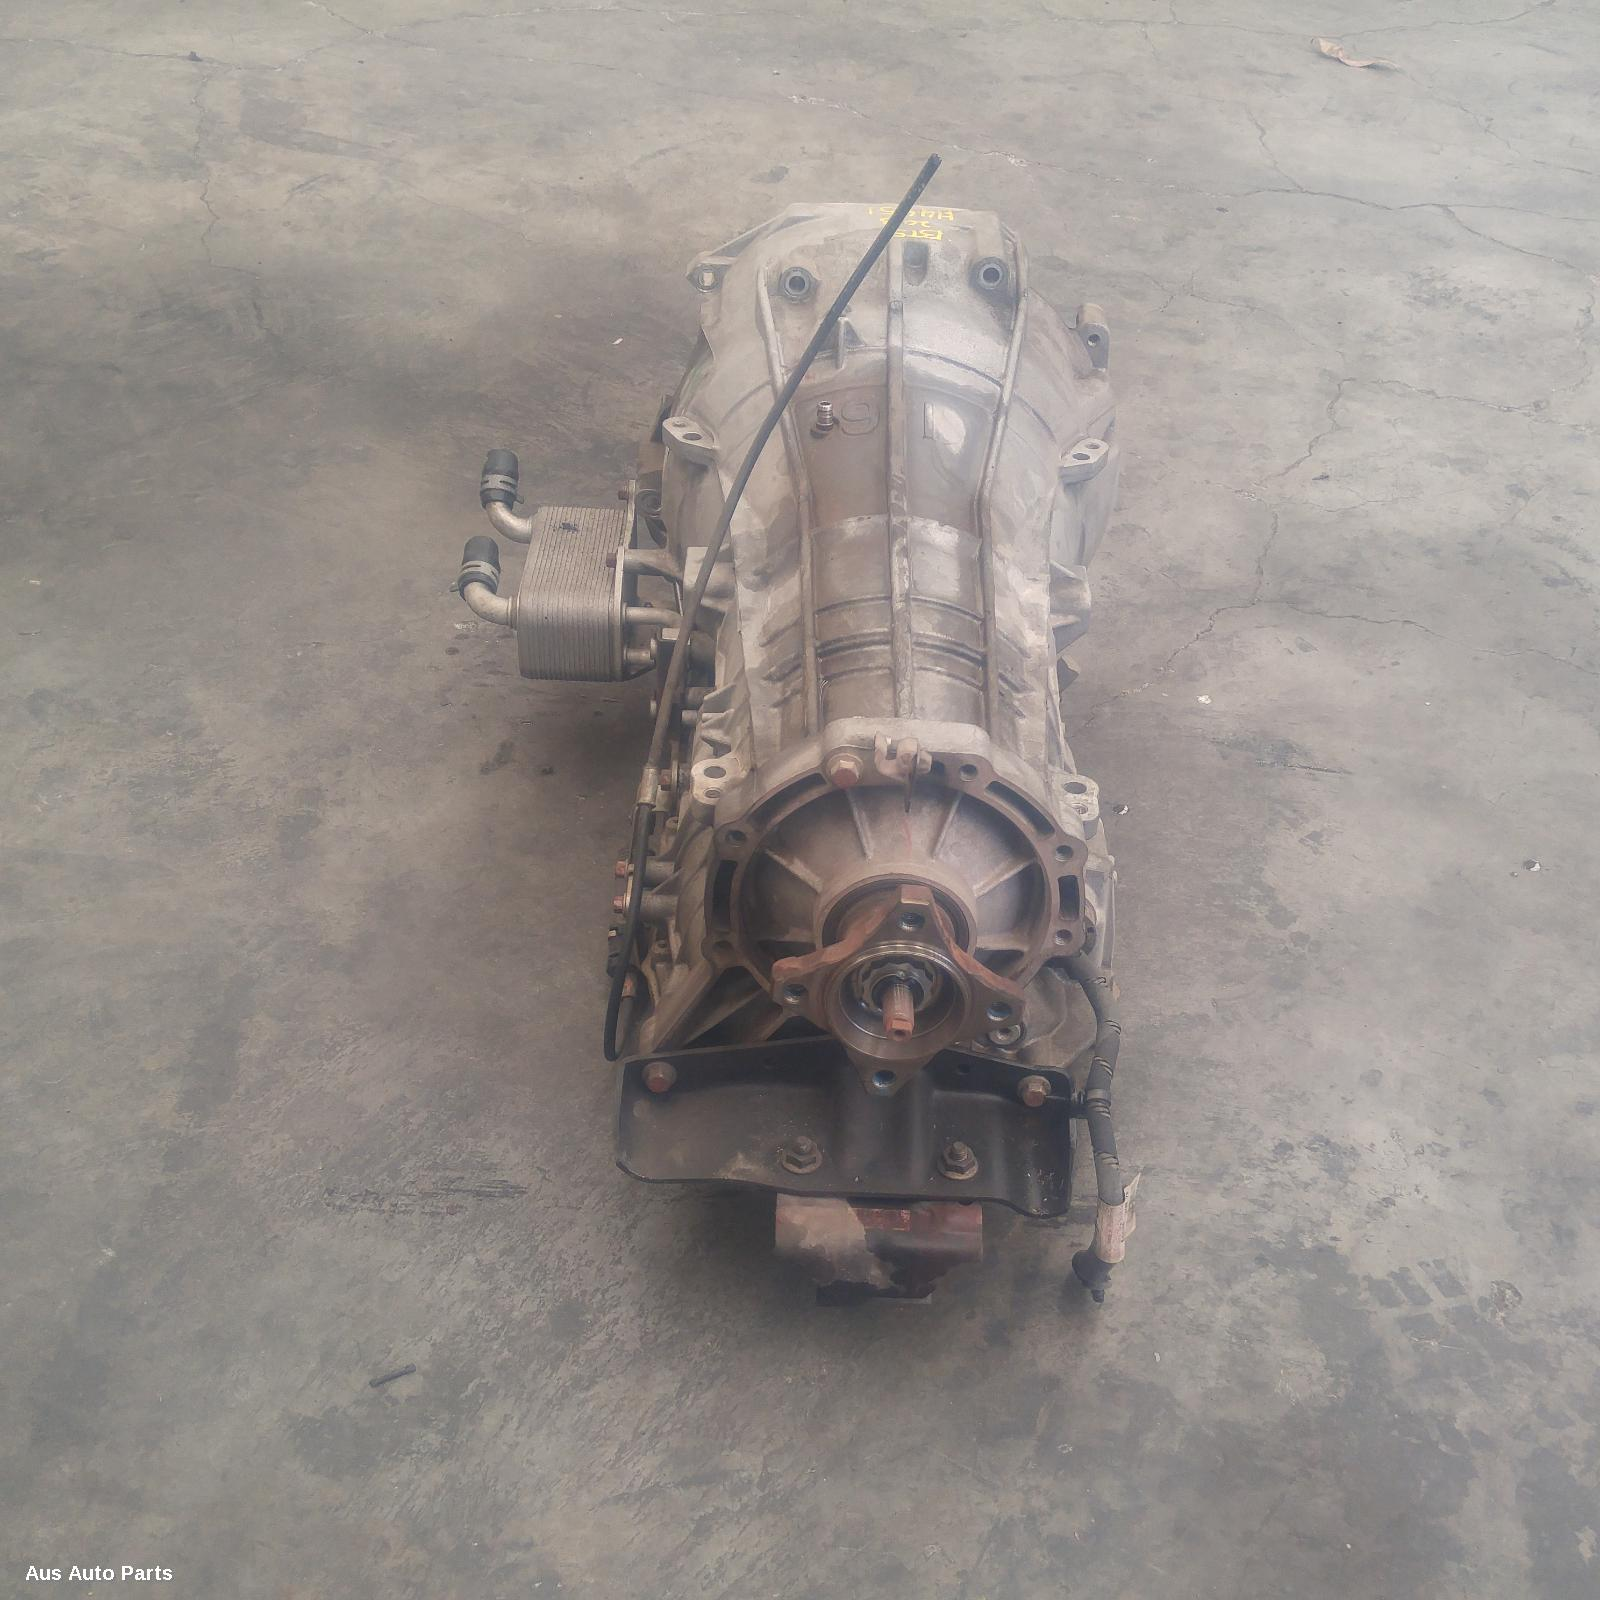 94991, Used transmission/gearbox for 2013 bt50| auto, rwd, diesel